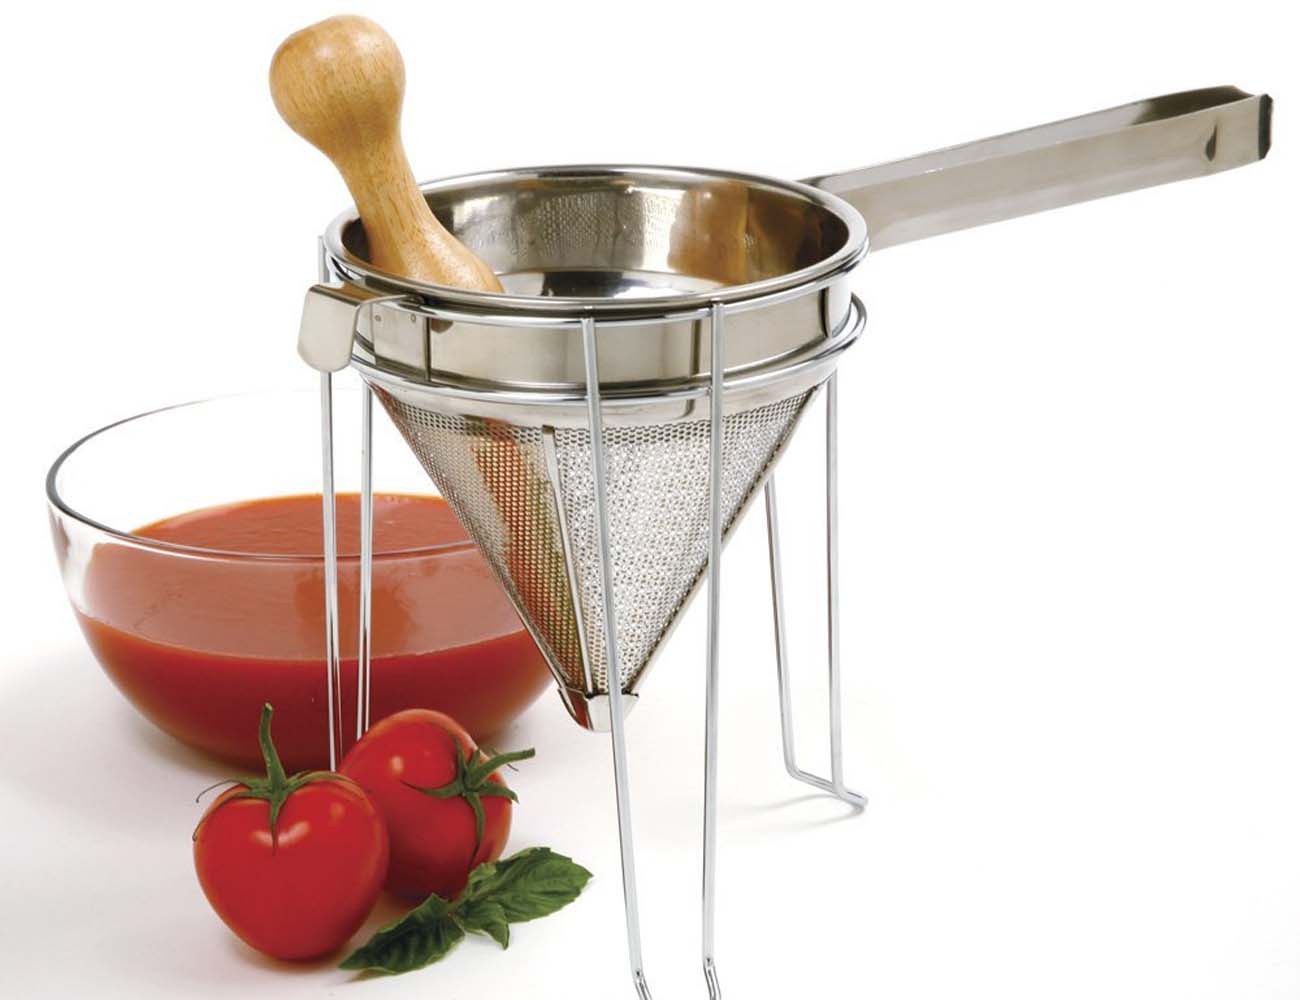 3-Piece Stainless-Steel Chinois Set by Fox Run